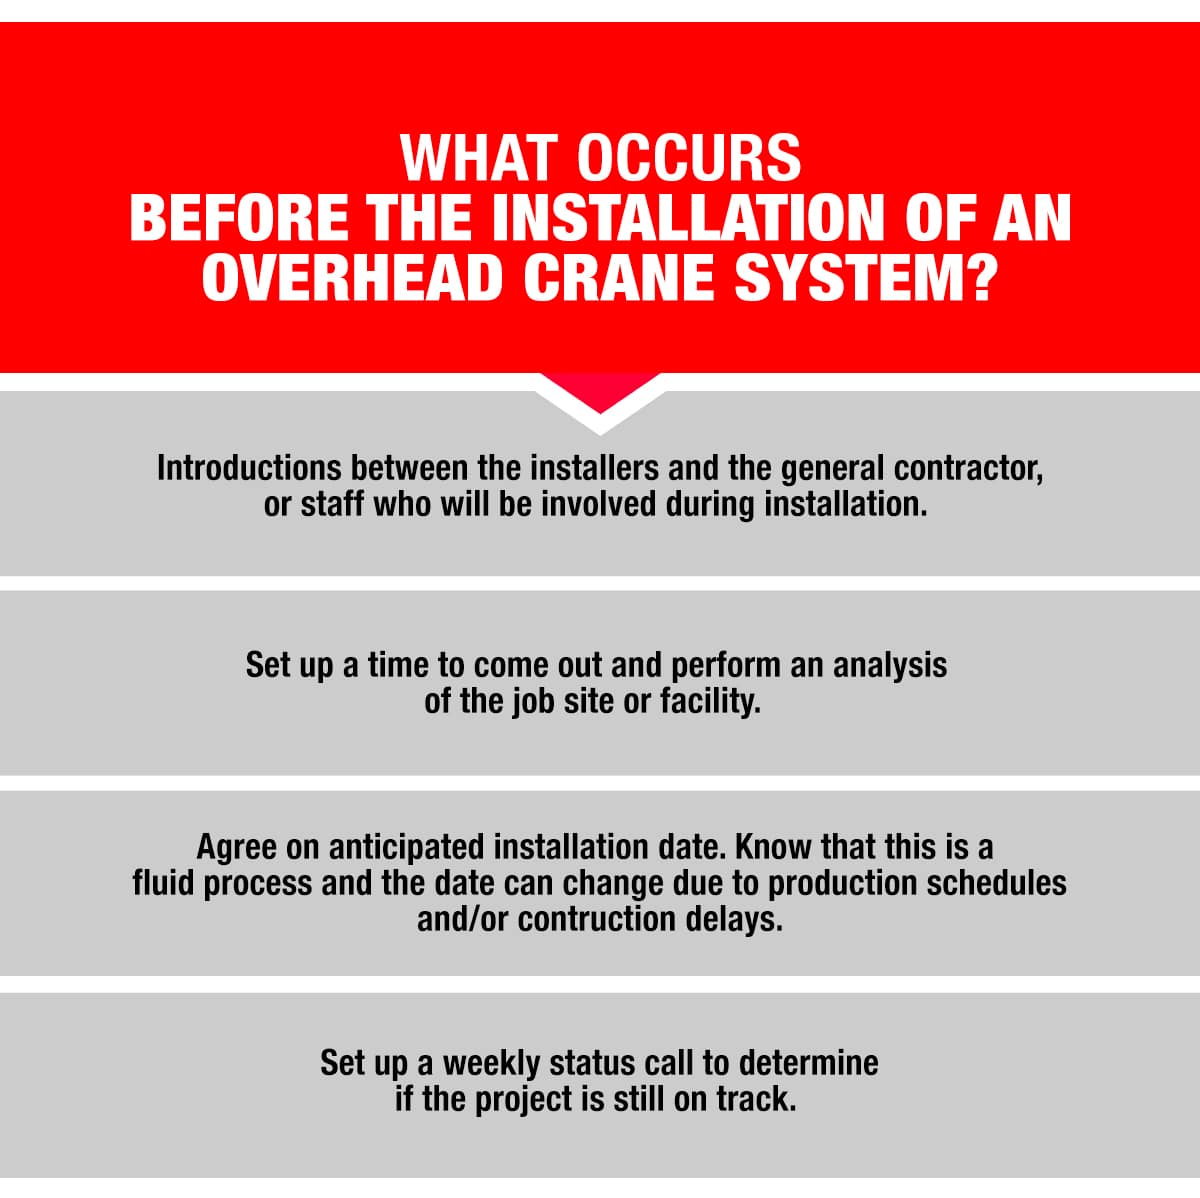 What Occurs Before the Installation of an Overhead Crane System